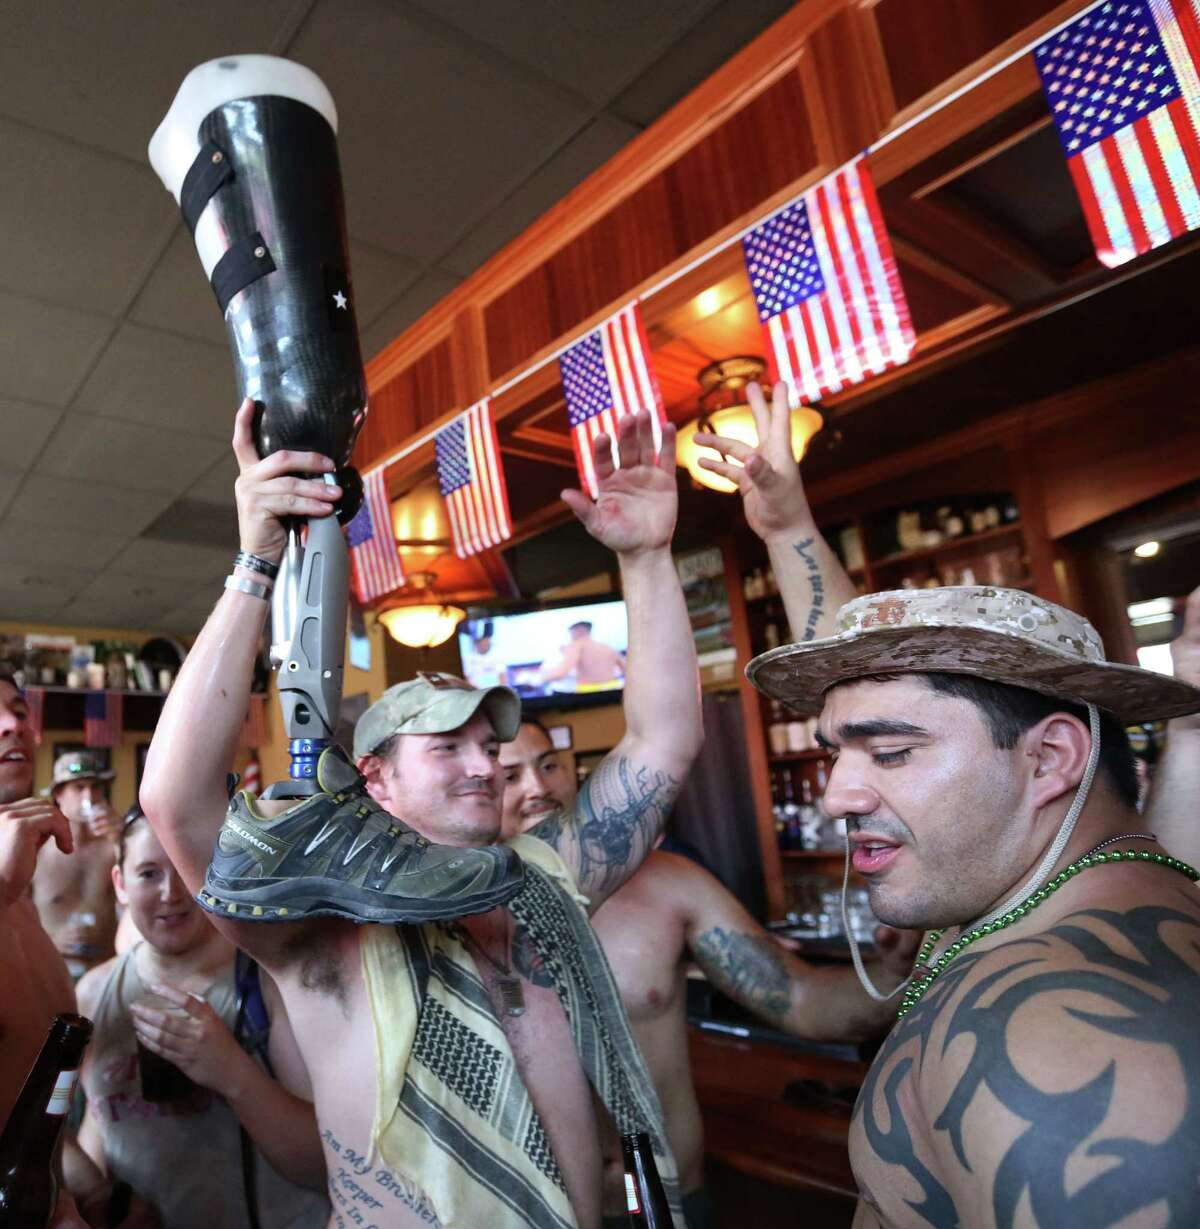 Levi Pope holds up a prosthetic leg after about a dozen veterans drank from it at Pimlico Irish Pub Saturday, Aug. 1, 2015, in Houston. The prosthesis belongs to a veteran who lost his leg to an IED in Afghanistan. The group will travel 22km to raise awareness about PTSD and suicides among veterans, which claim 22 lives each day.